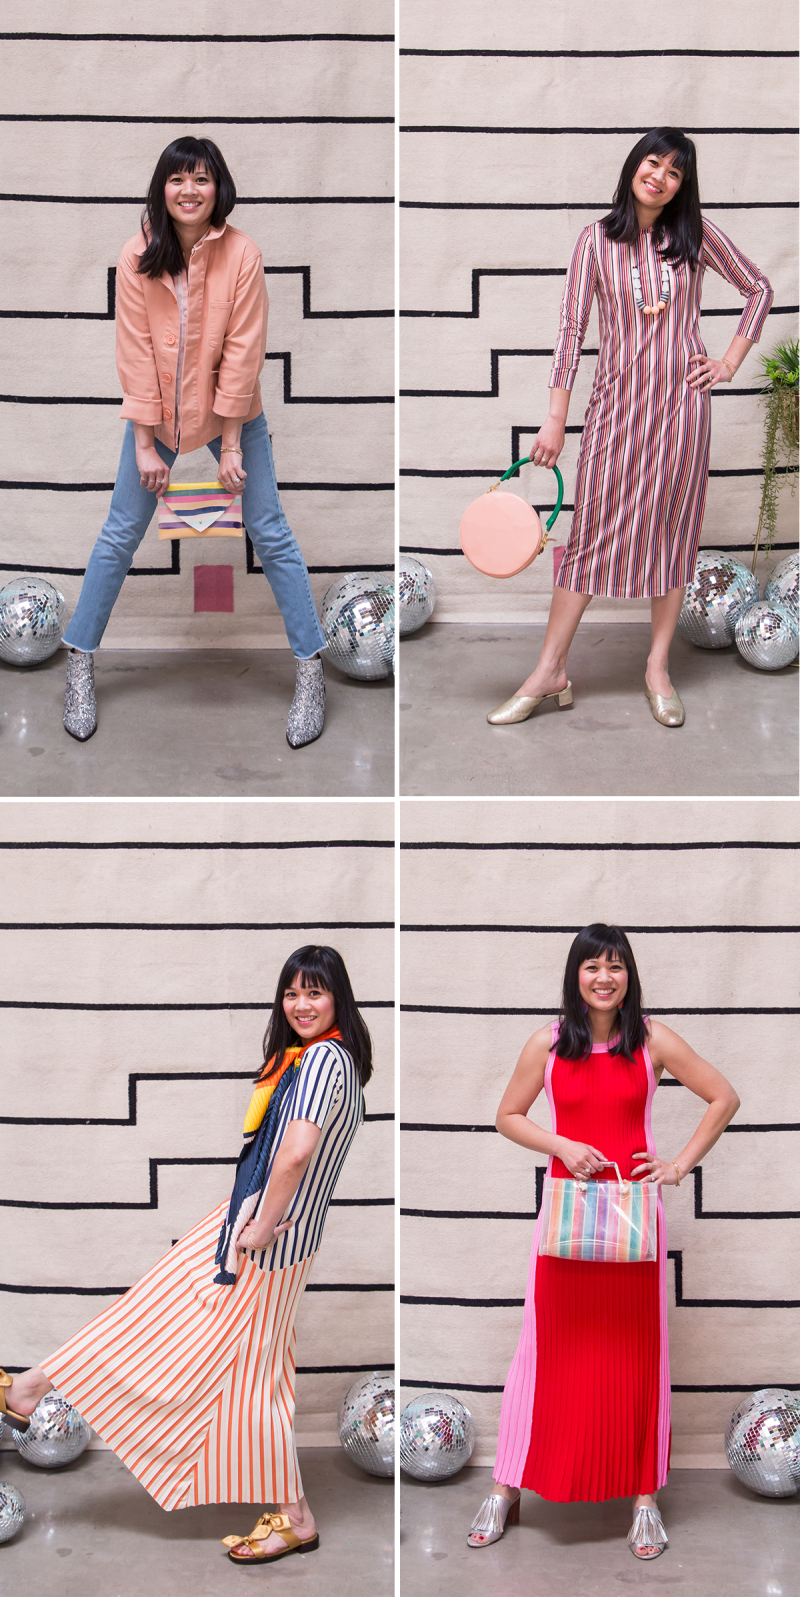 2018_3_15_March-Striped-Outfits-12-grid